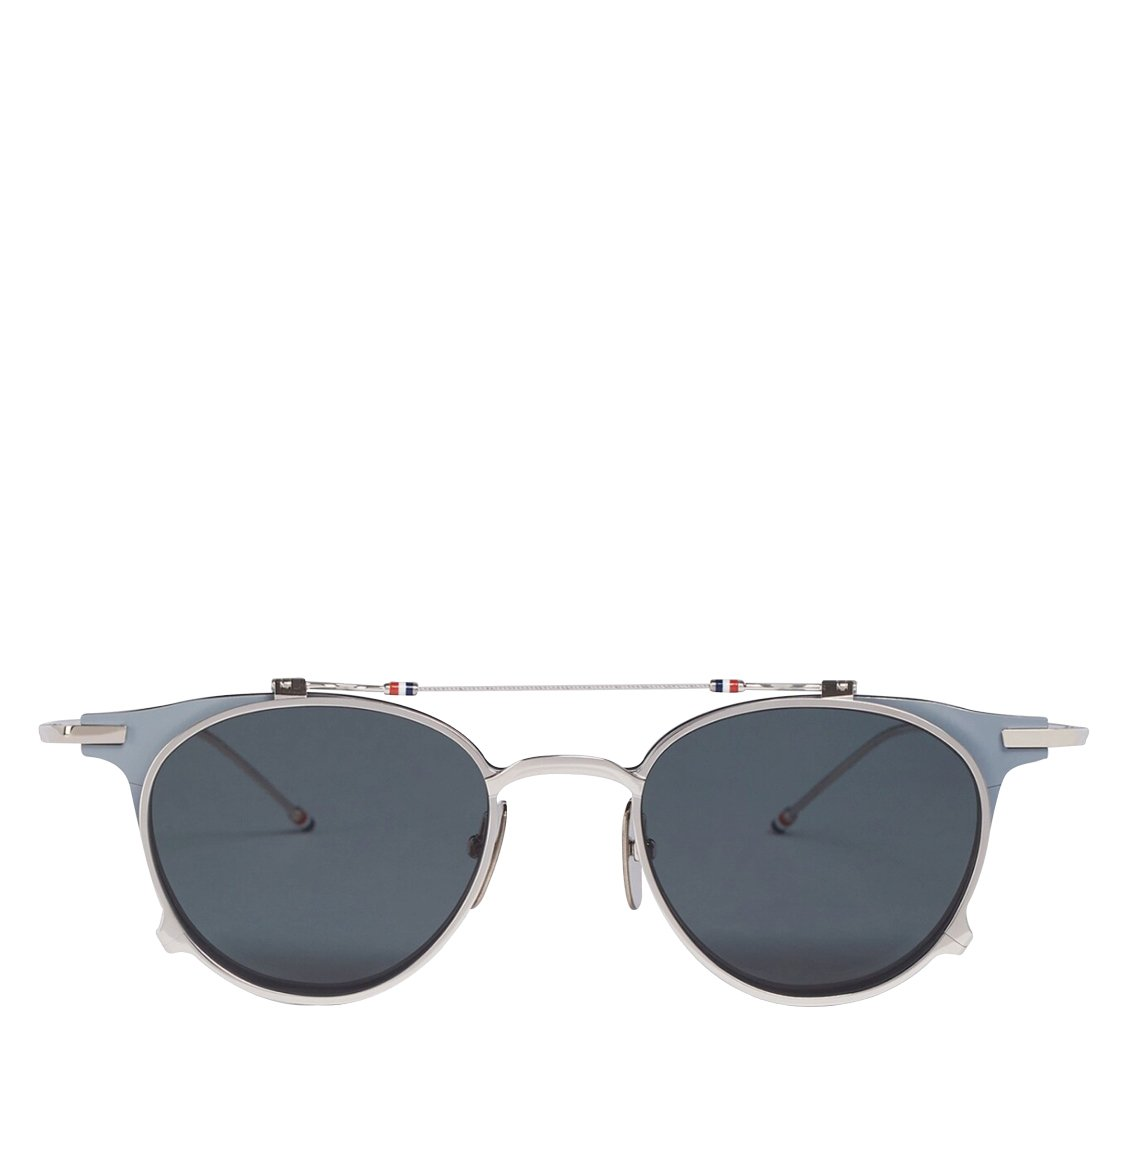 Thom Browne Flip-Up Double Round Frame Matte Cool Grey Sunglasses Γυαλιά Ηλίου